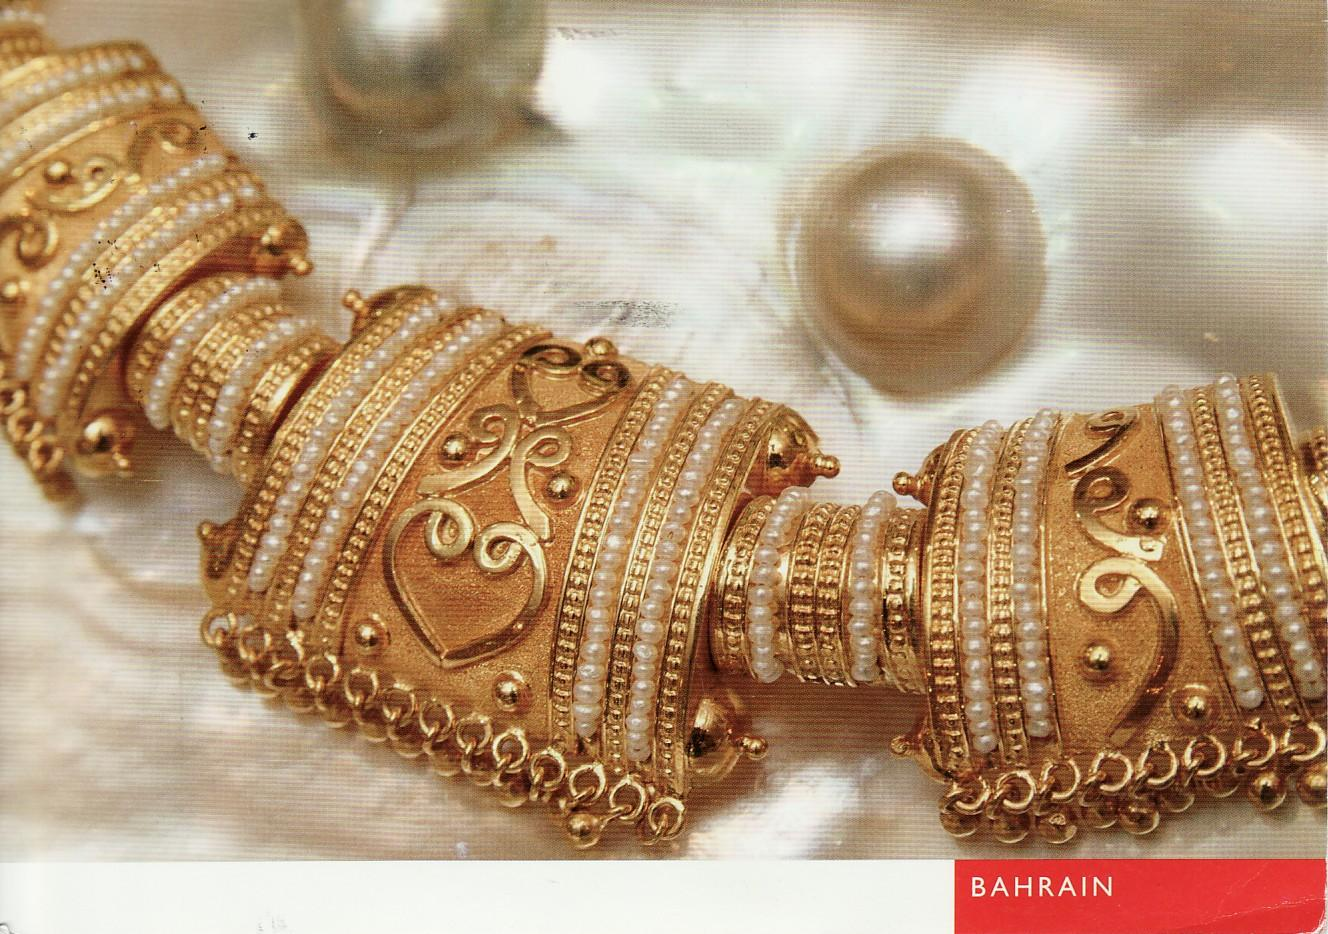 Pin by Noof Khalid on Gold kingdom of Bahrain | Pinterest | Gold